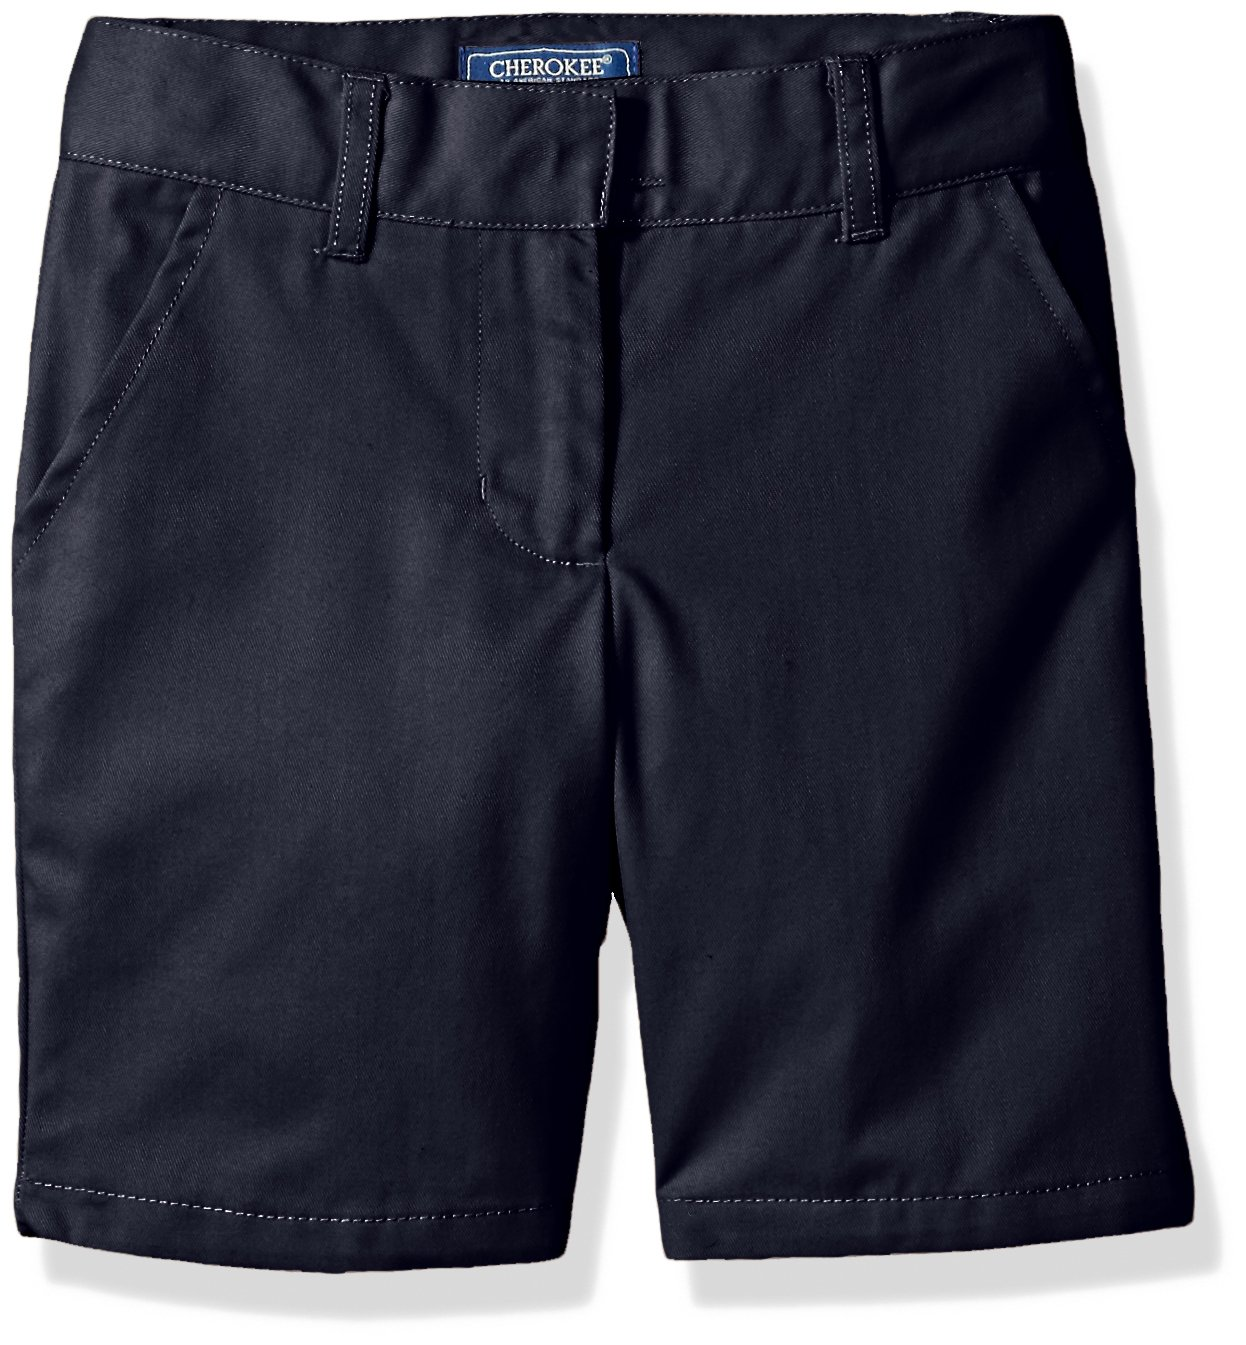 Cherokee Big Girls' Uniform Twill Shorts, Navy, 12